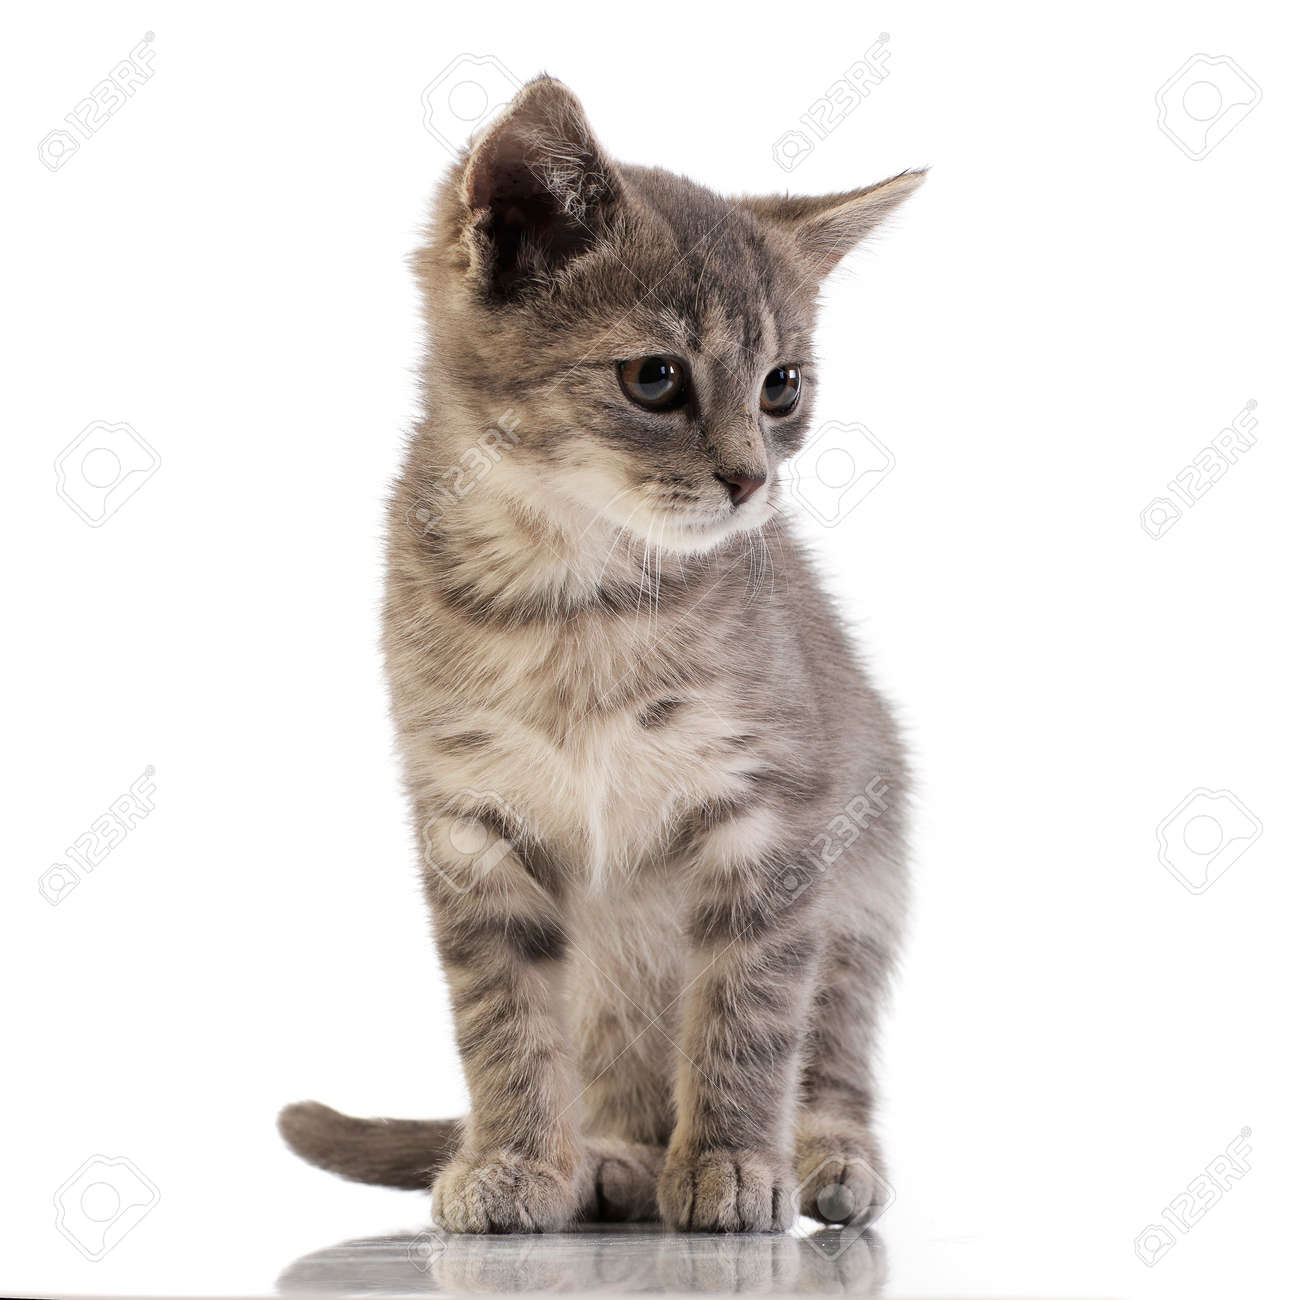 Studio shot of an adorable domestic kitten standing on white background. - 125791091